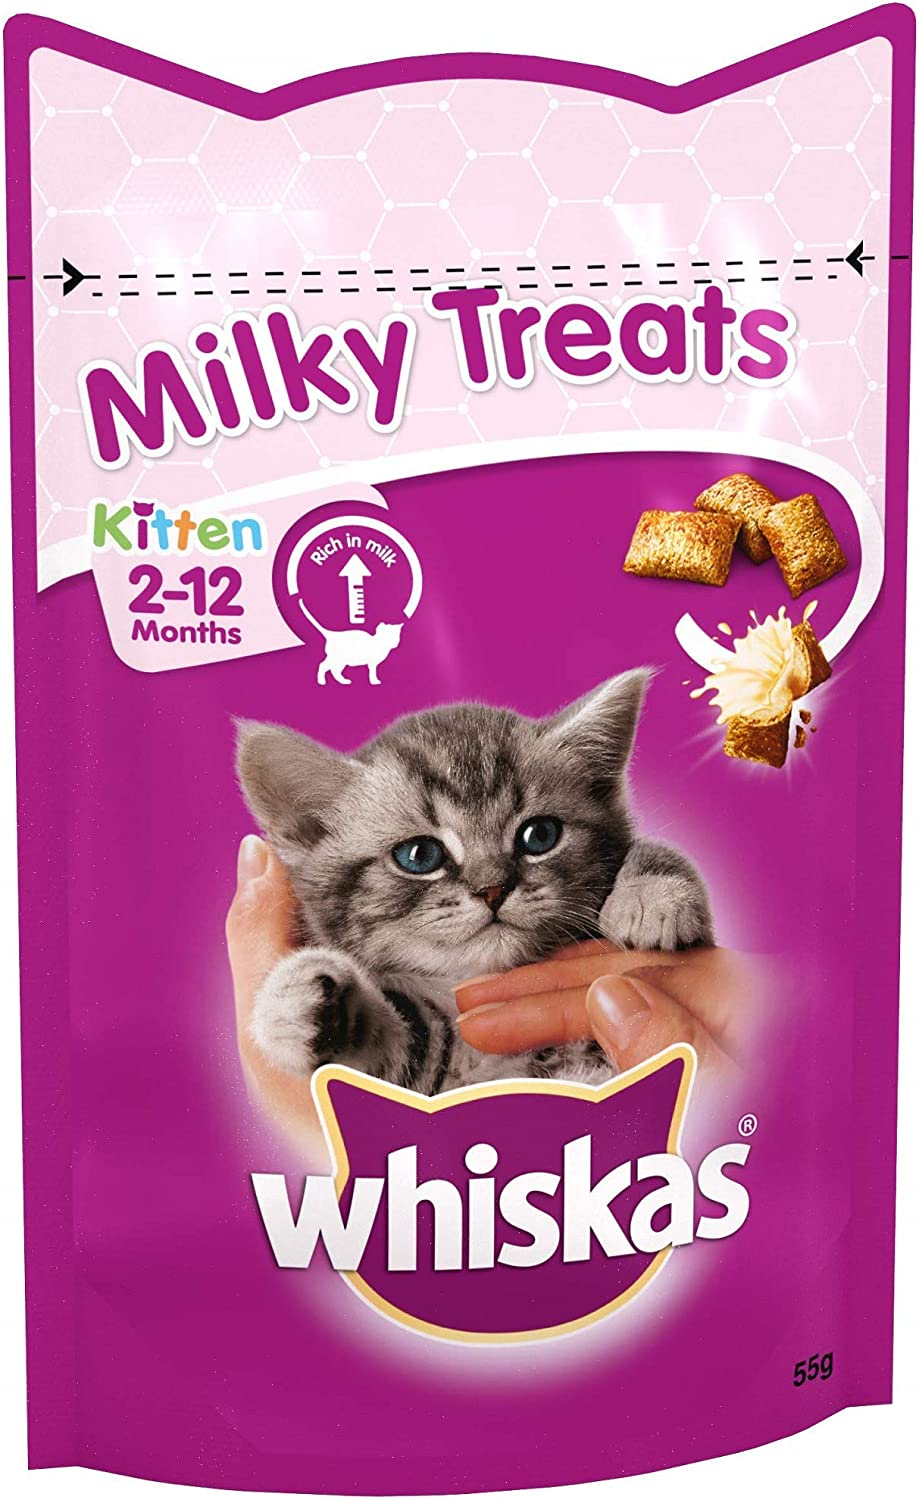 Whiskas Kitten Milky Treats Tasty Milky Treats For Kittens From 2 To 12 Months Small Bite Size Snacks With A Delicious Milky Filling 8 X 55 G Packets Amazon Co Uk Pet Supplies